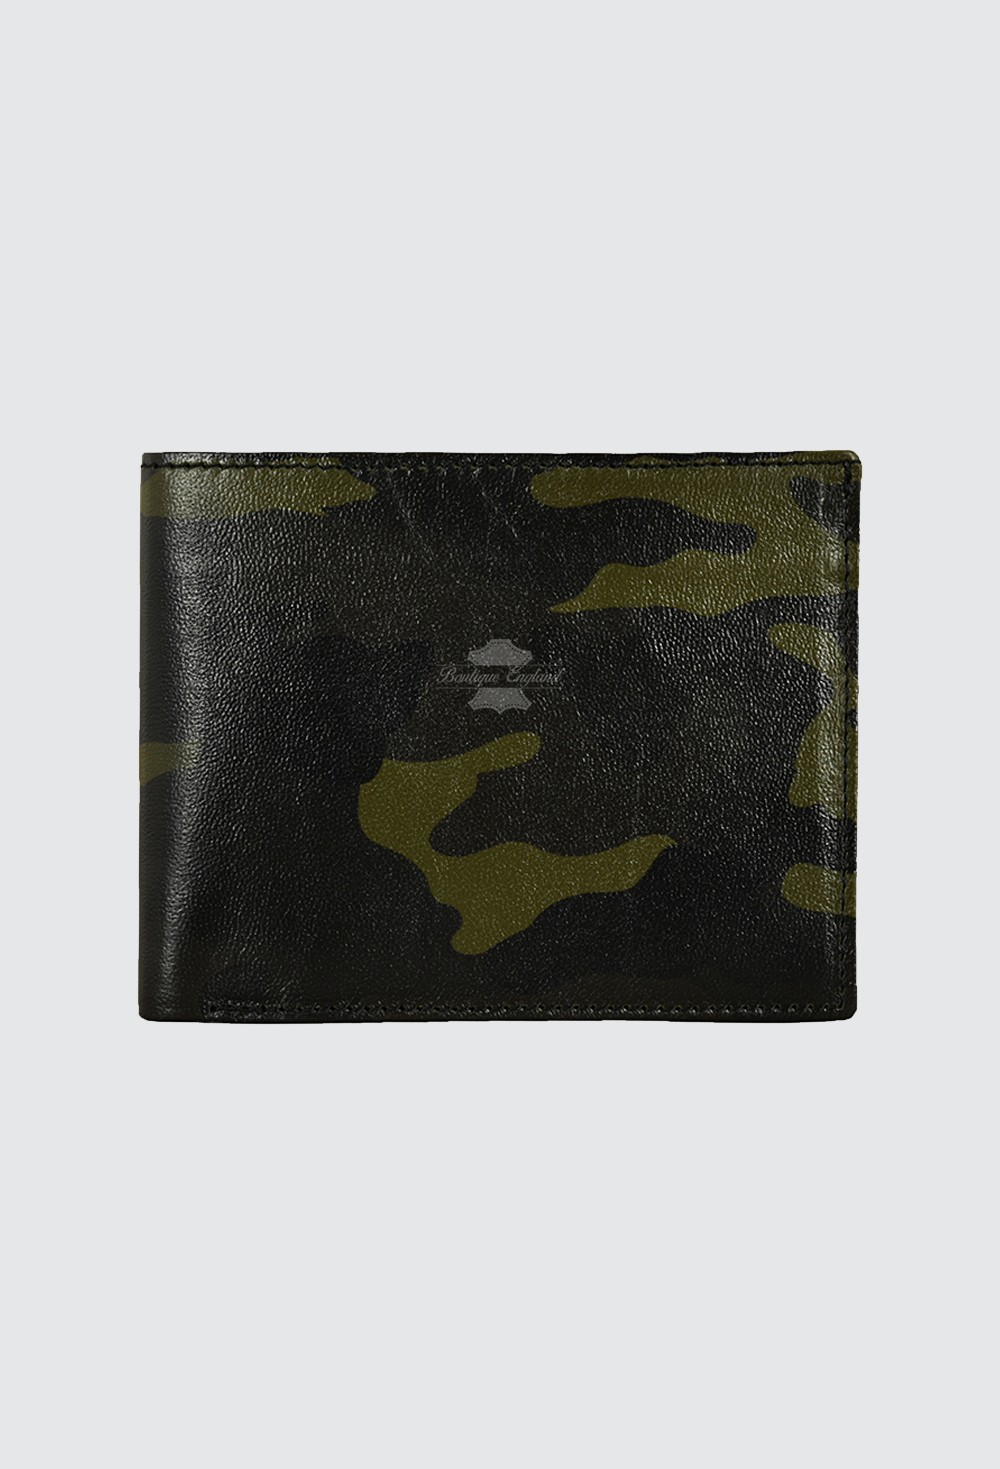 Men's Leather Small Wallet Camouflage ID, Cards Holder 100% Real Leather 1515